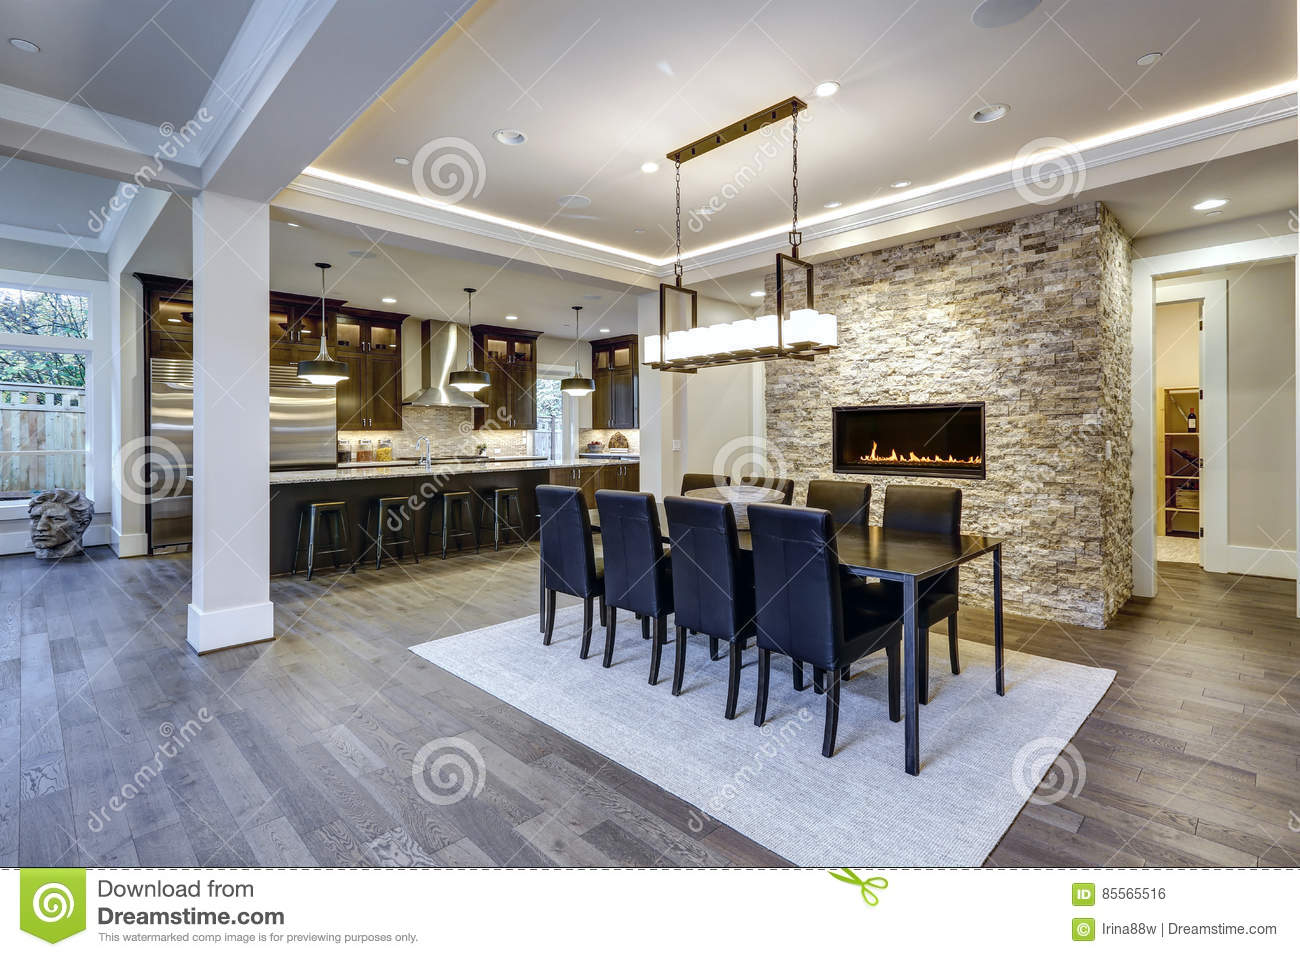 Modern Open Floor Plan Dining Room Design Accented With Stone Fireplace Wall Facing Black Table Lined Leather Chairs And Illuminated By